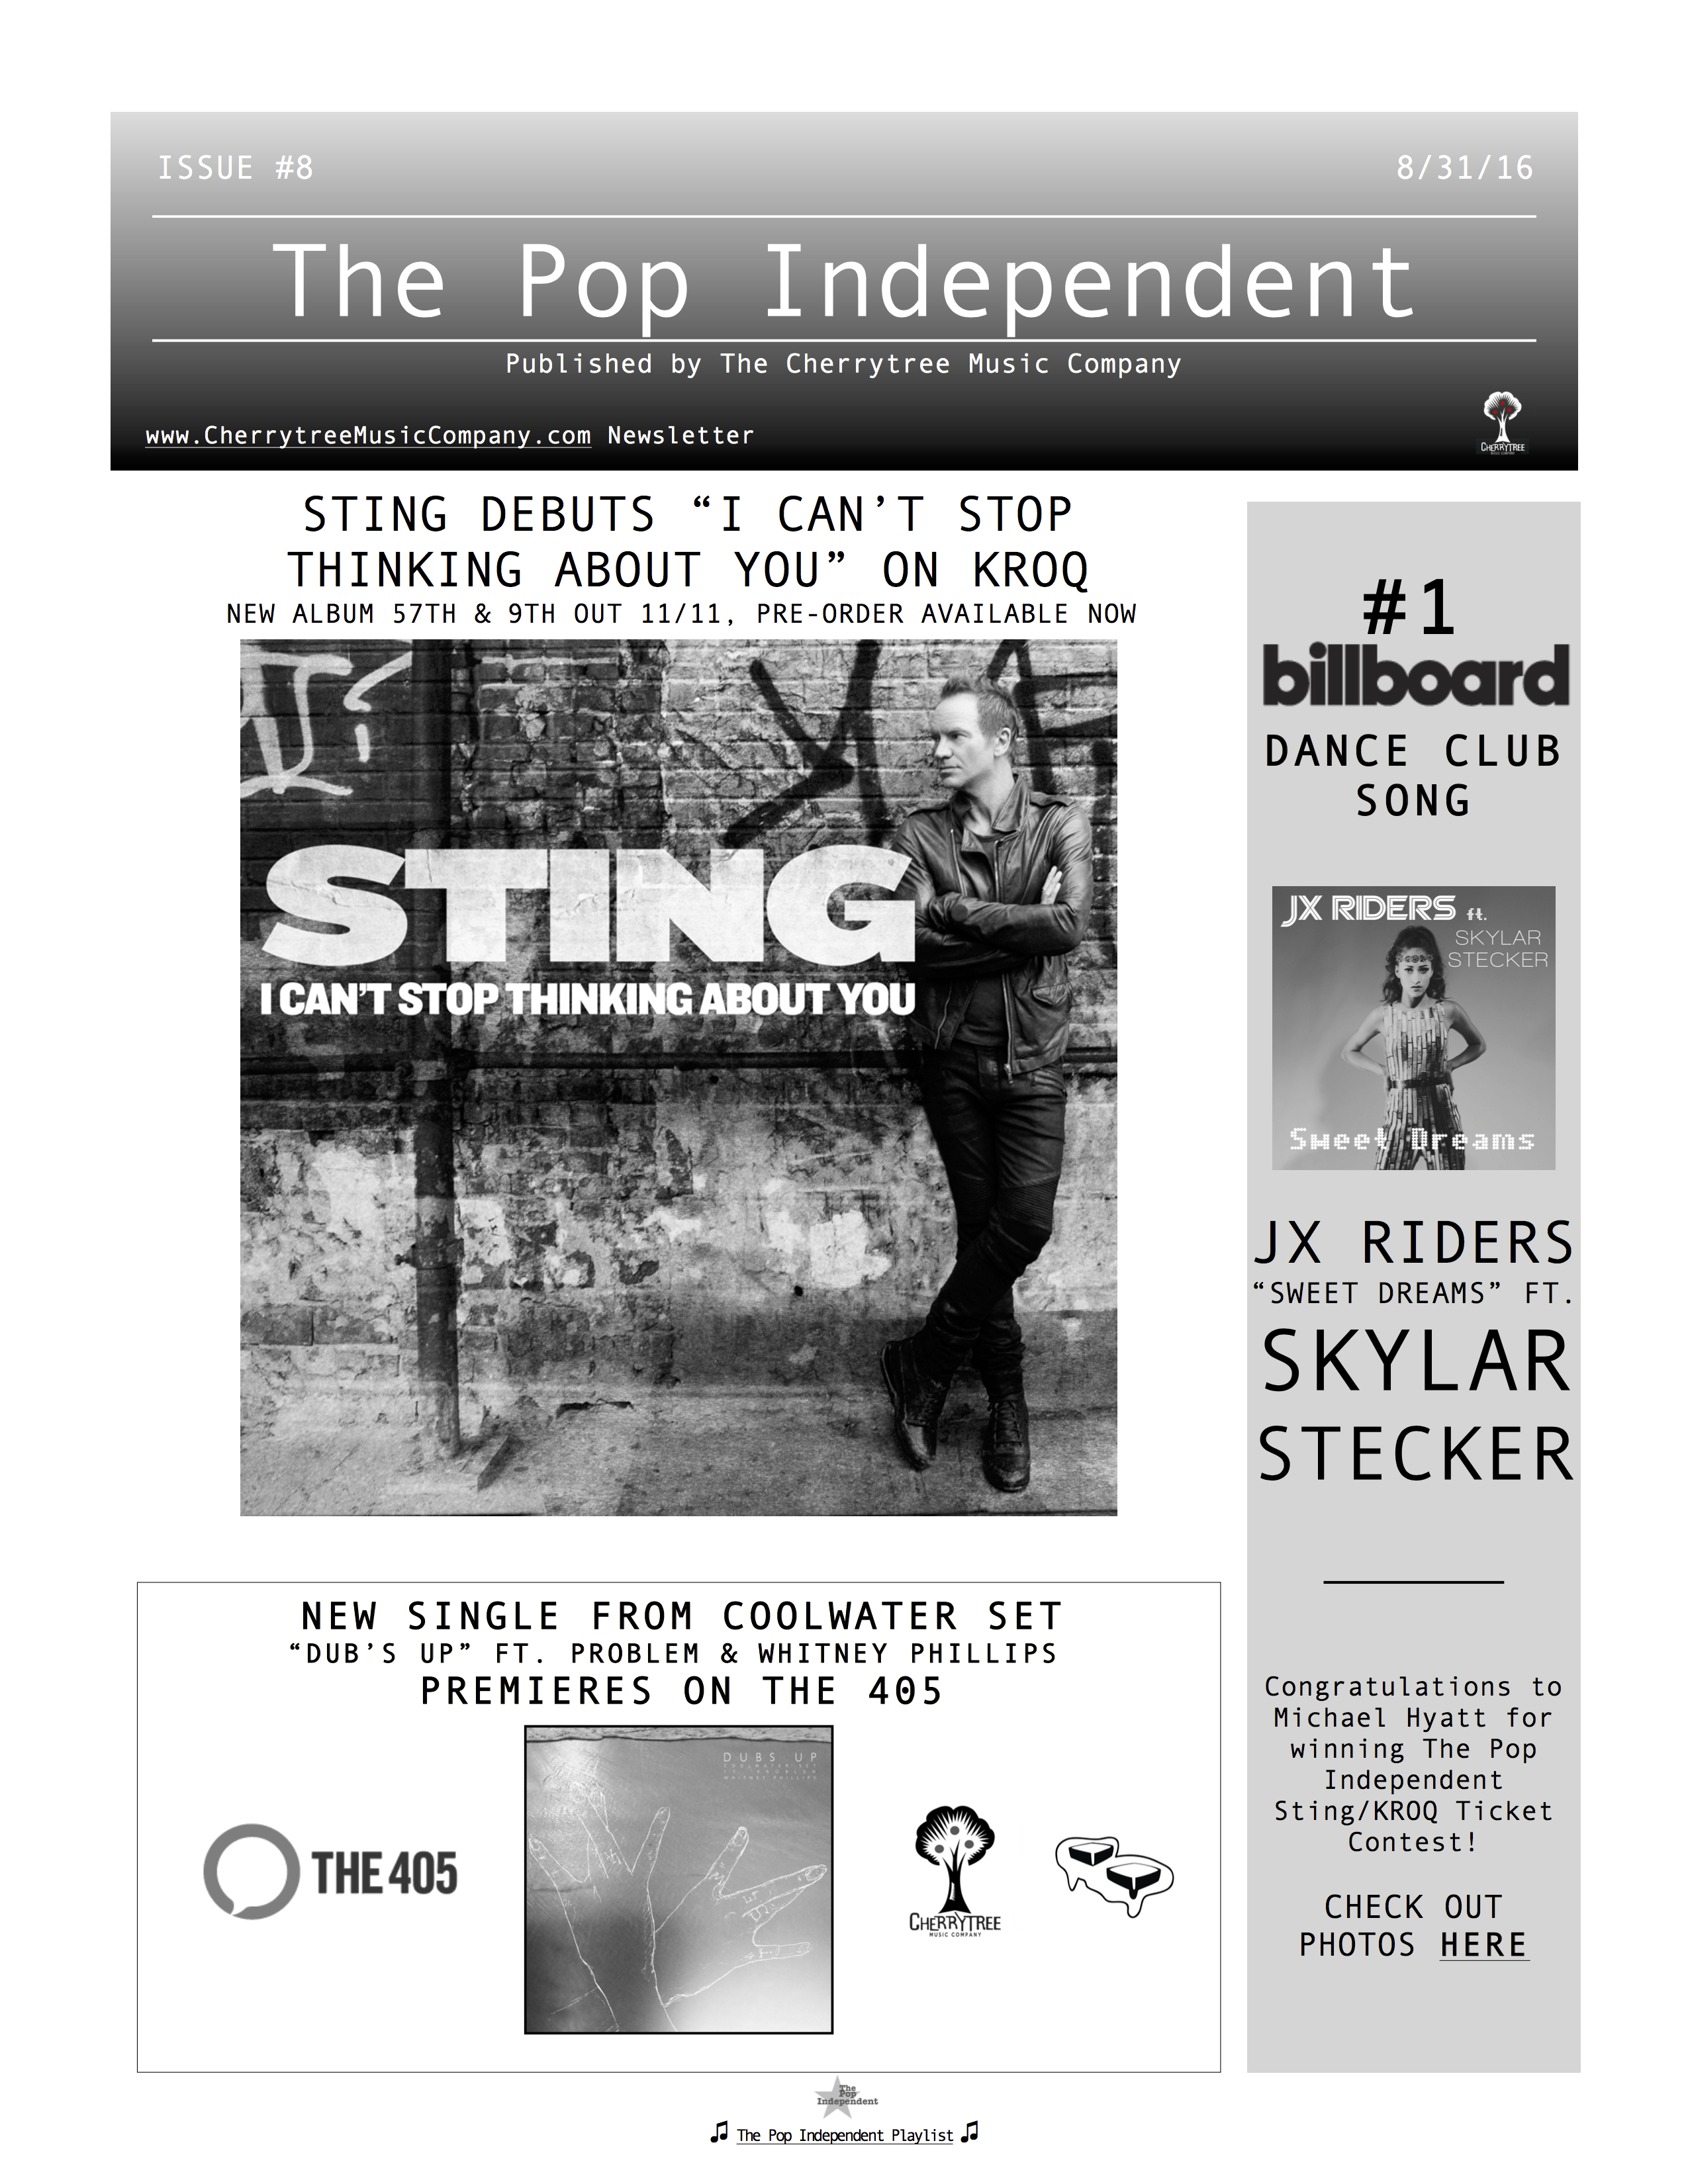 The Pop Independent, issue 8